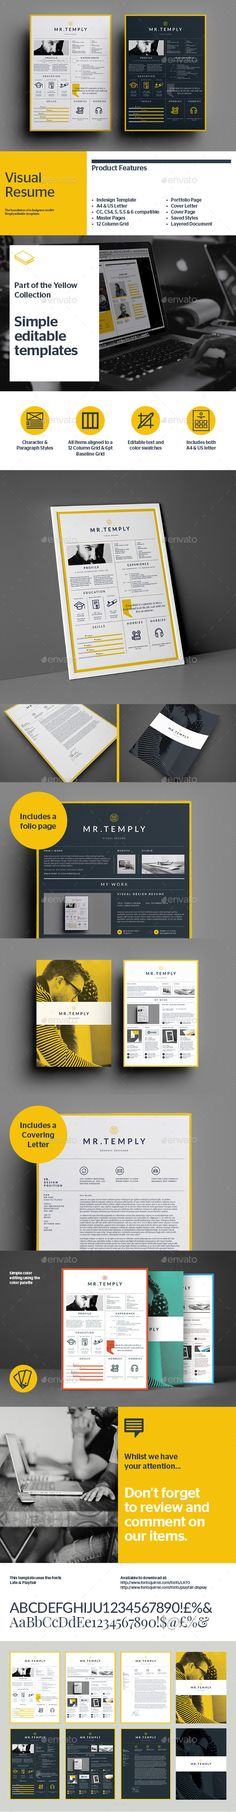 Free Resume Template For Graphic Designer | Misc | Pinterest